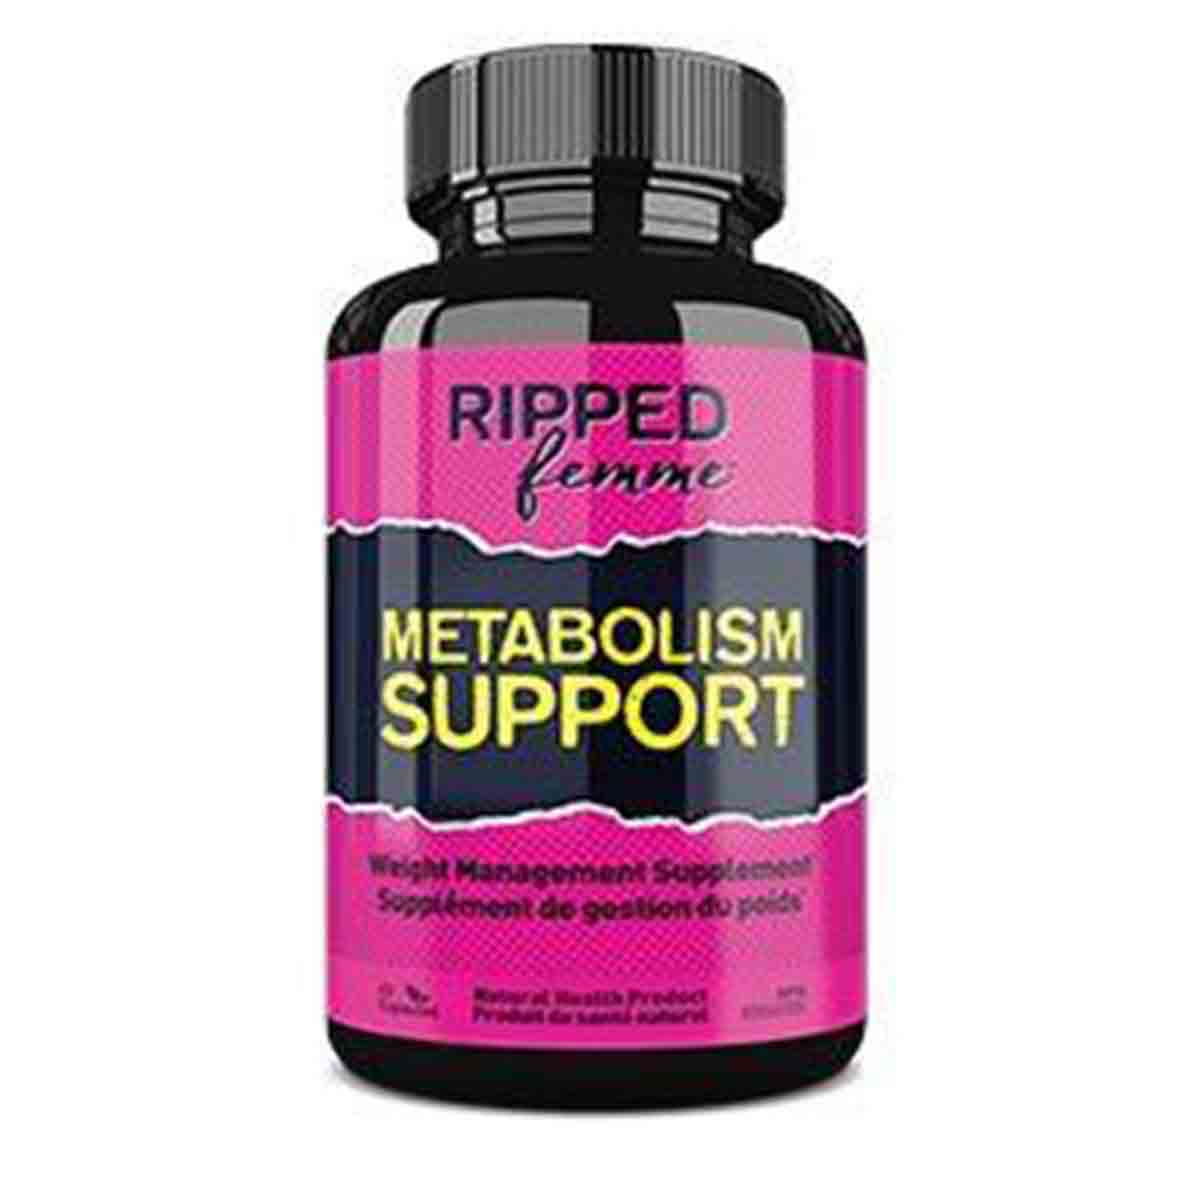 Ripped Femme Metabolism Support